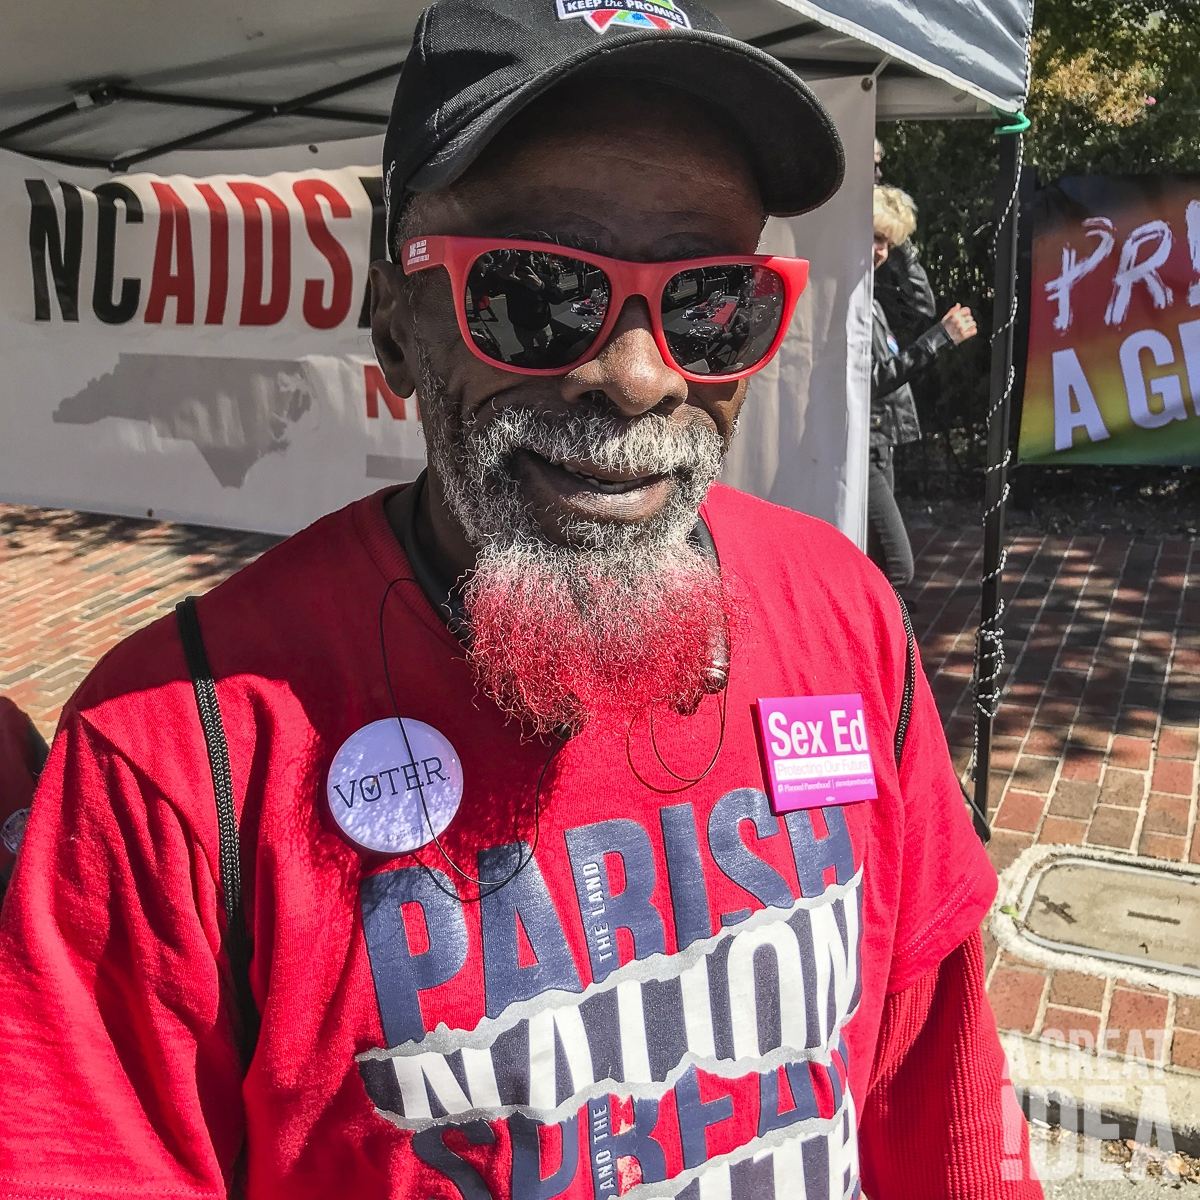 Attendee at Greensboro Pride wears A Great Idea voter pins